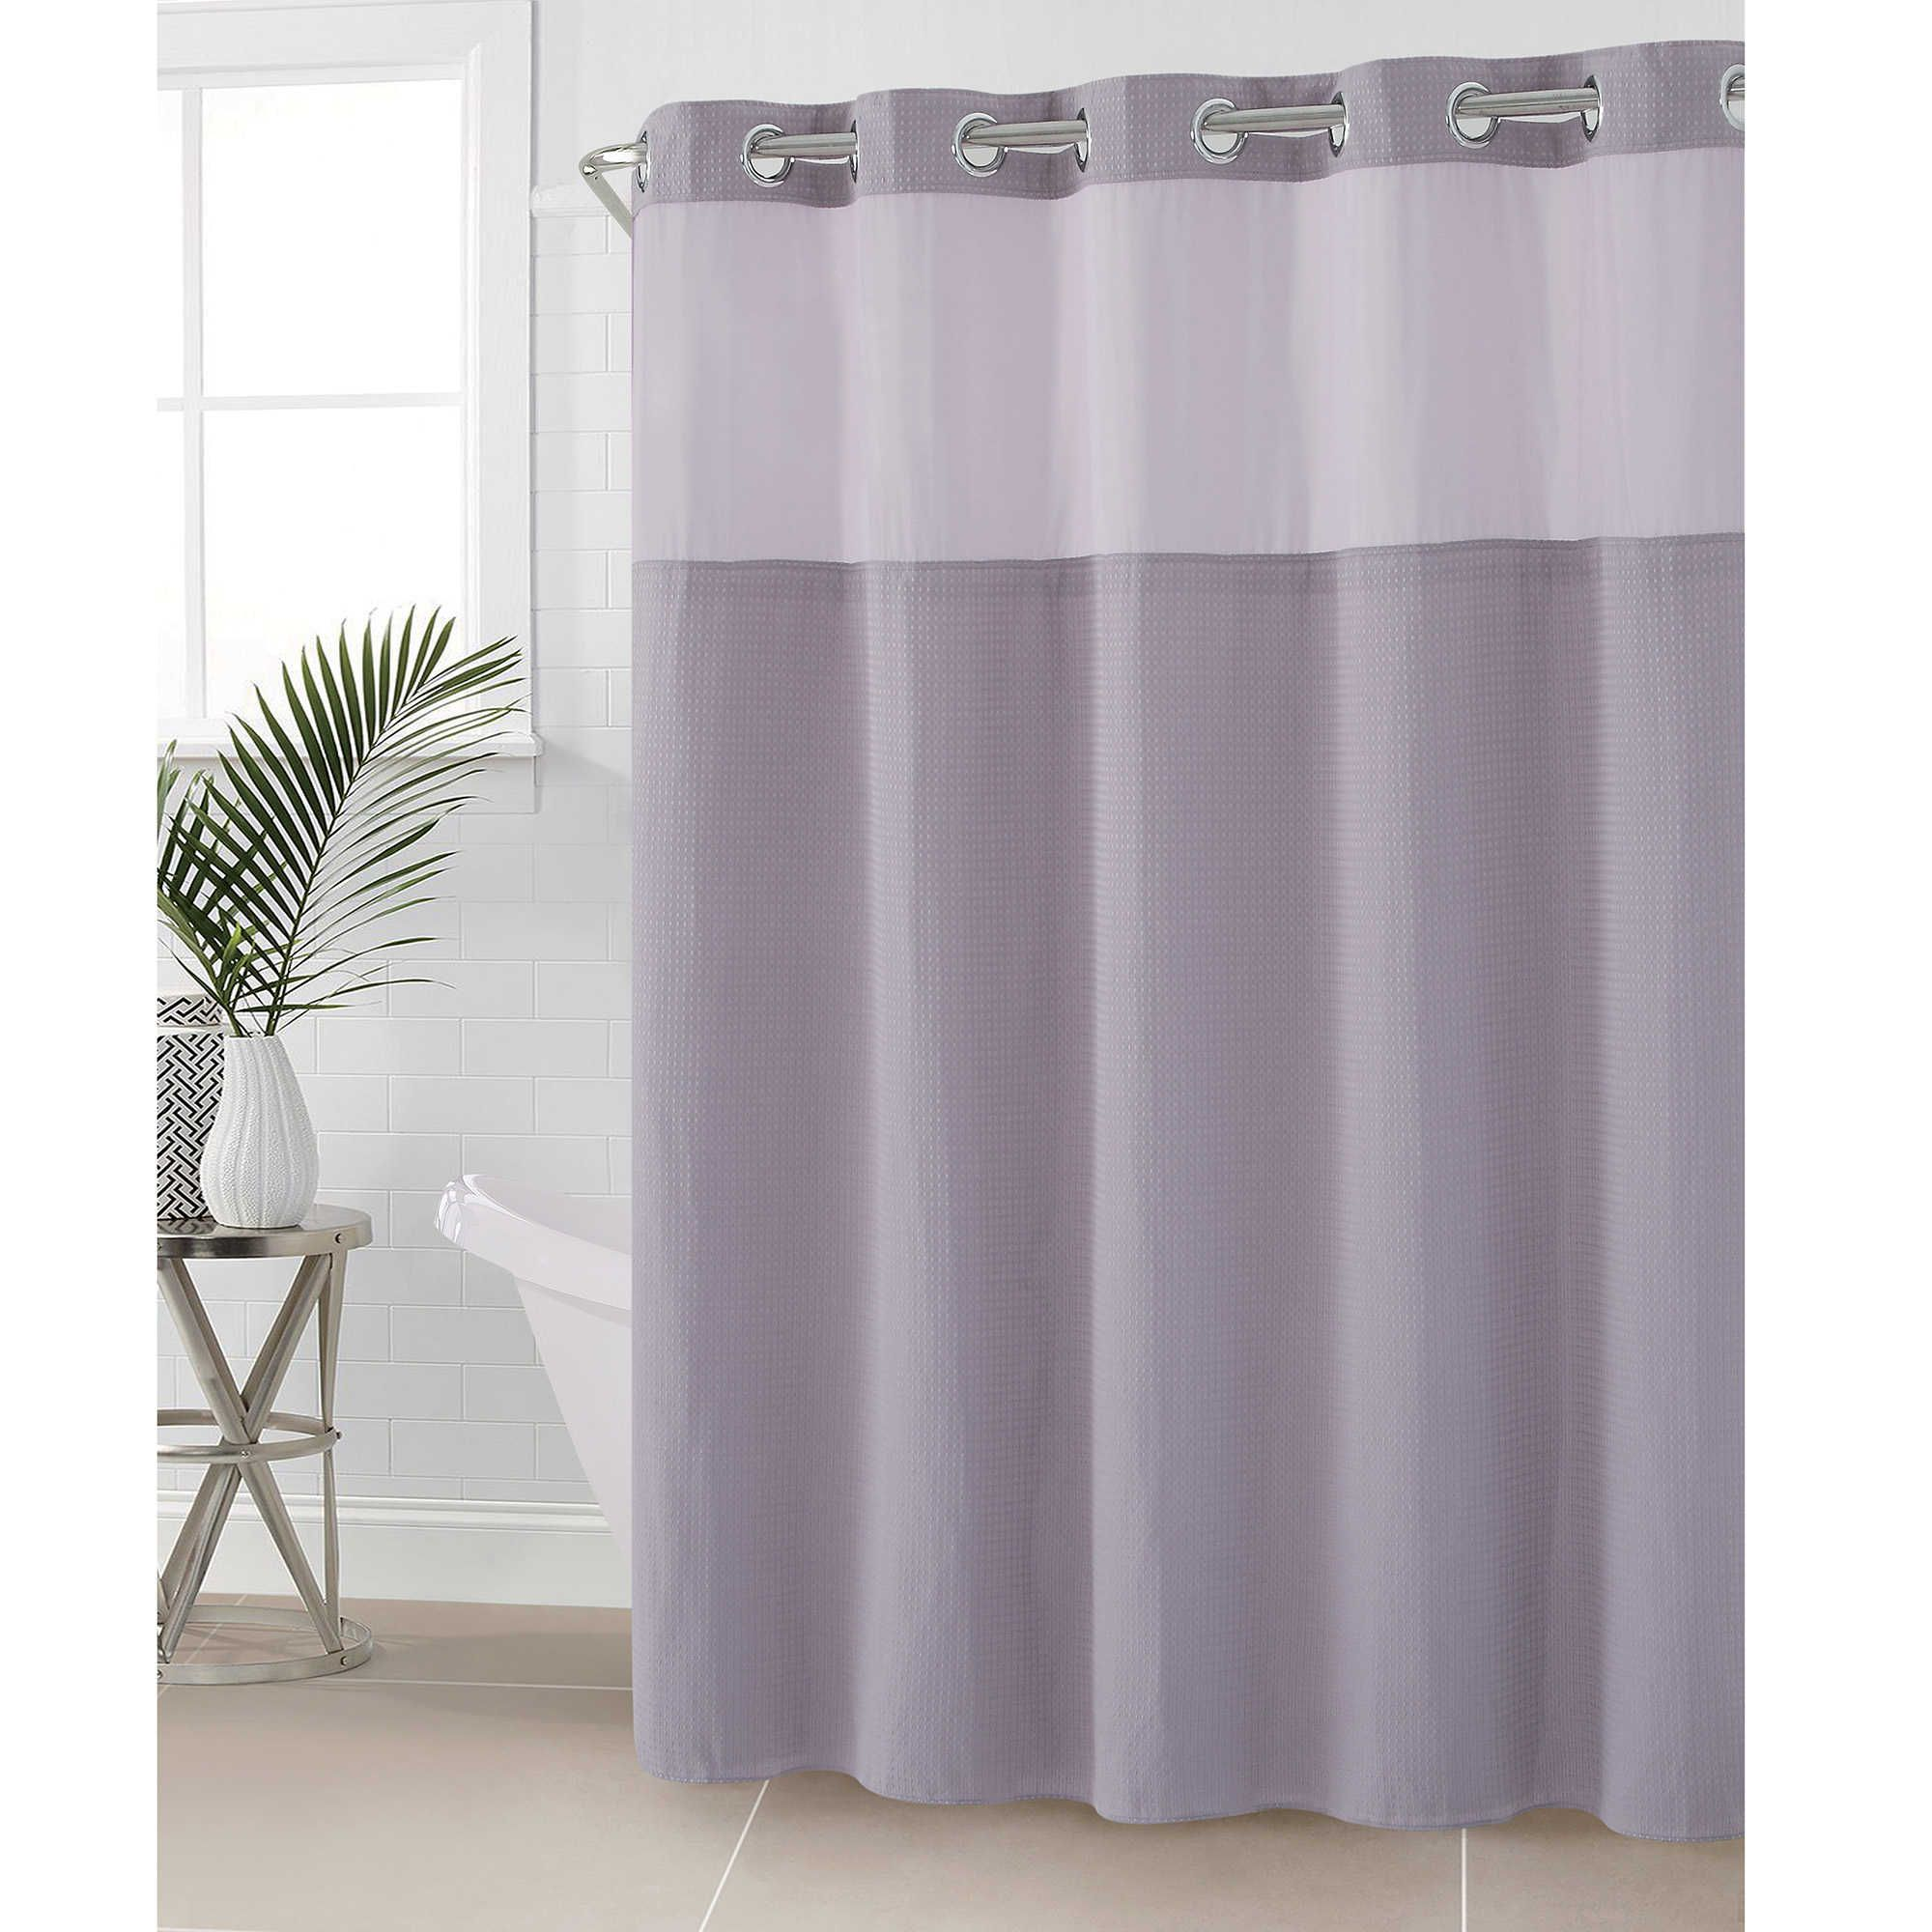 Pdp Main Image In 2019 Fabric Shower Curtains Hookless Shower